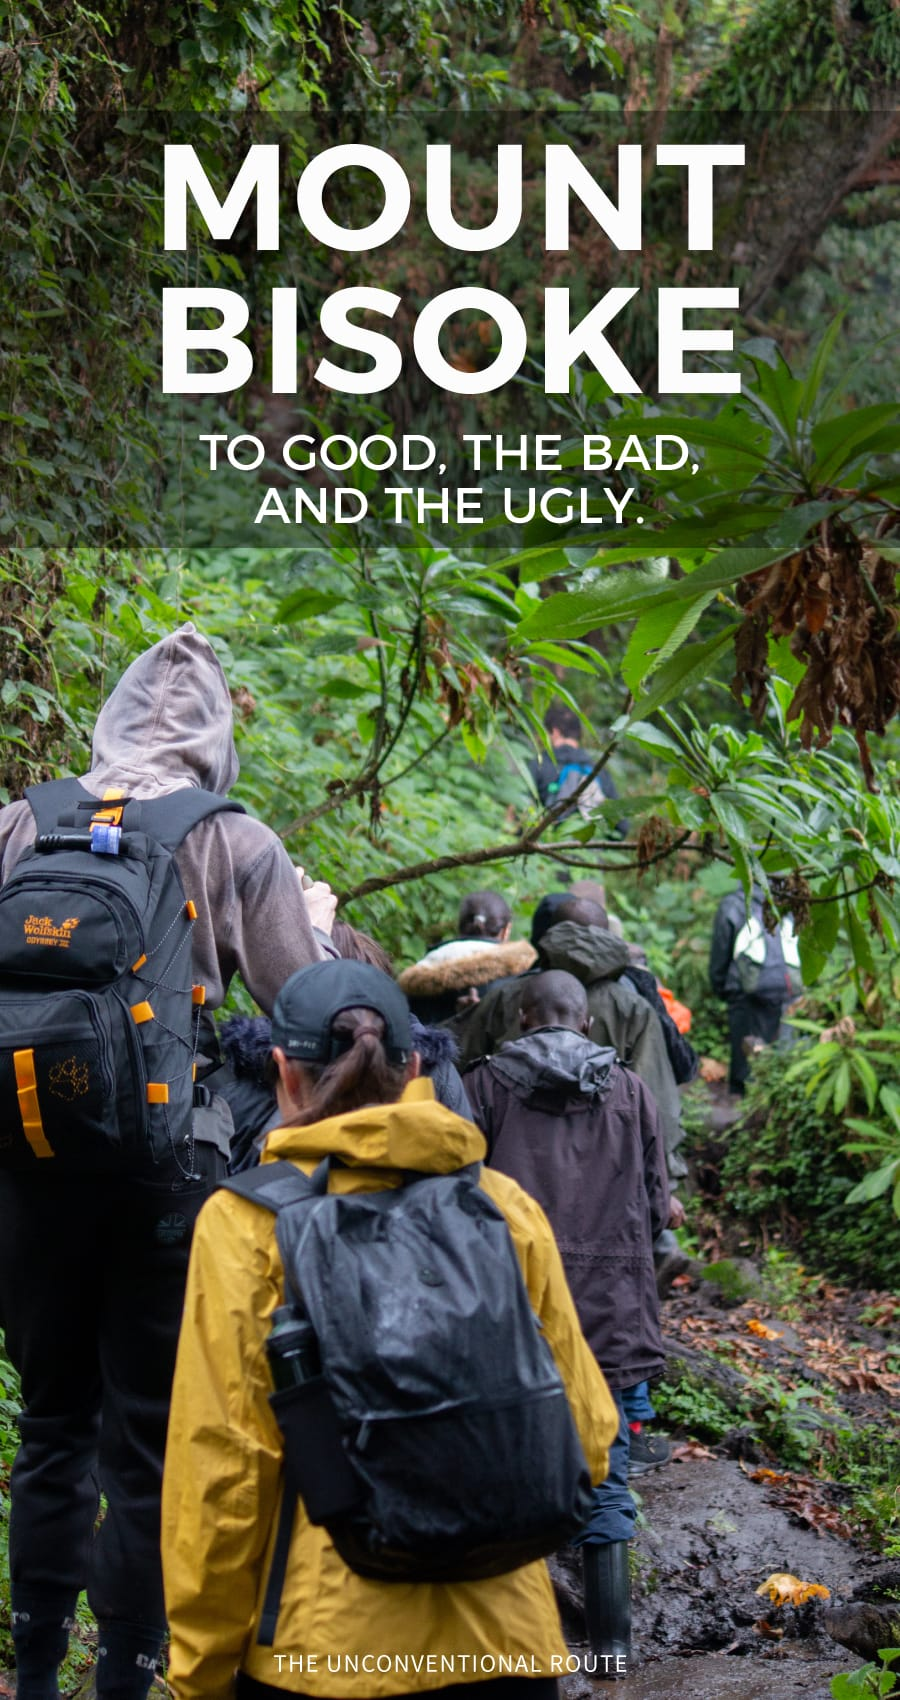 Know-before-you-go tips and info about the Mount Bisoke hike in Rwanda's Volcanoes Park that we learned the hard way.